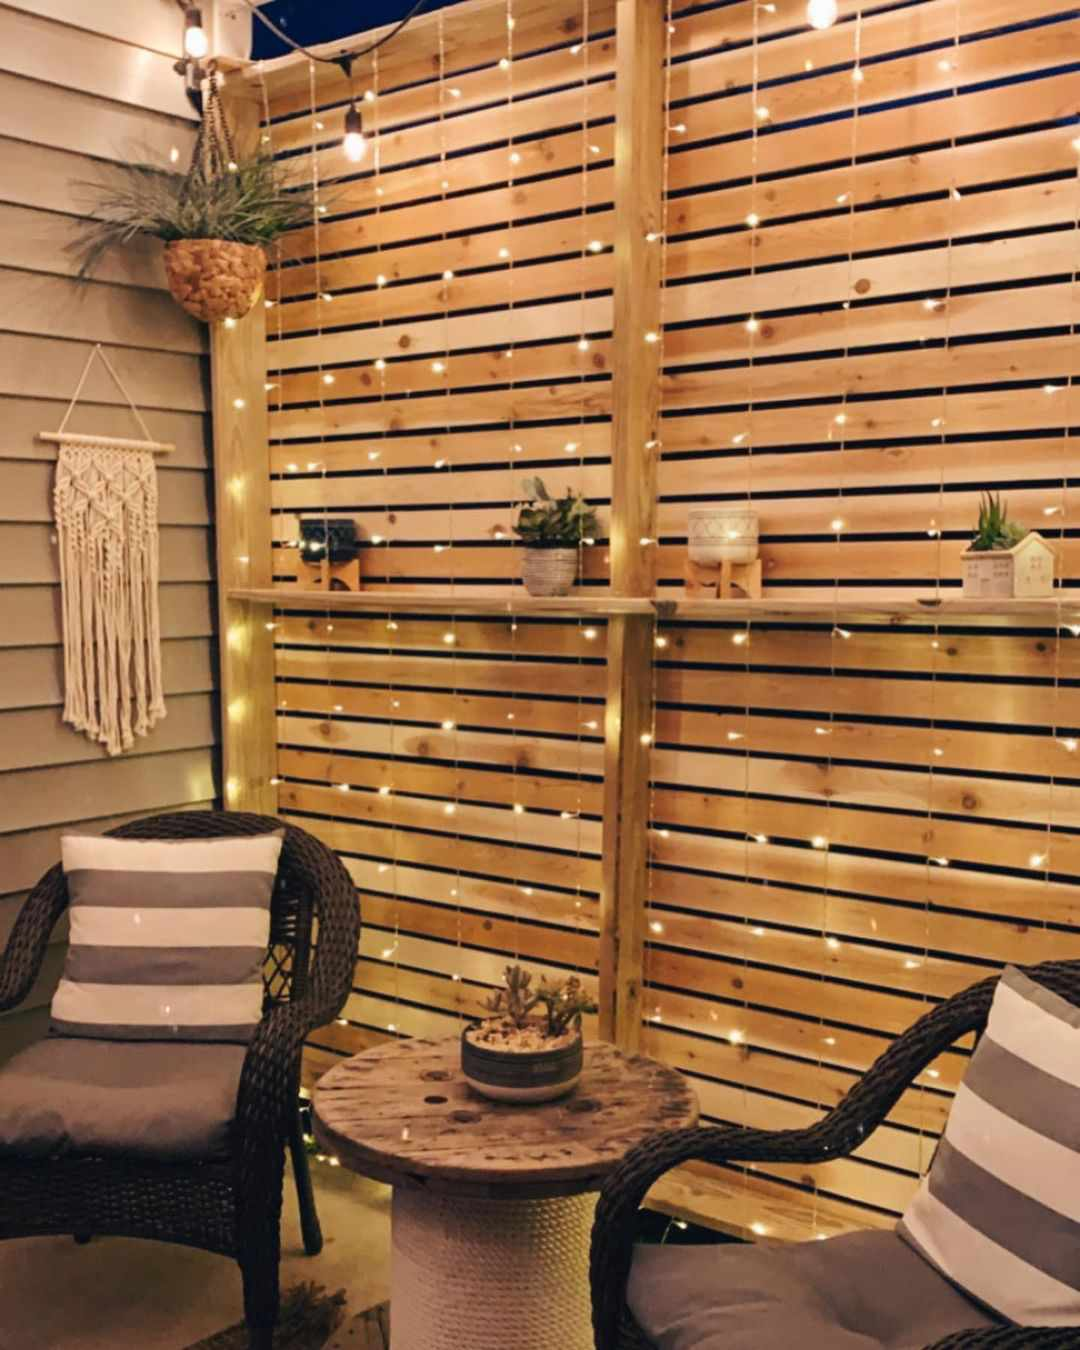 Patio with hanging string lights